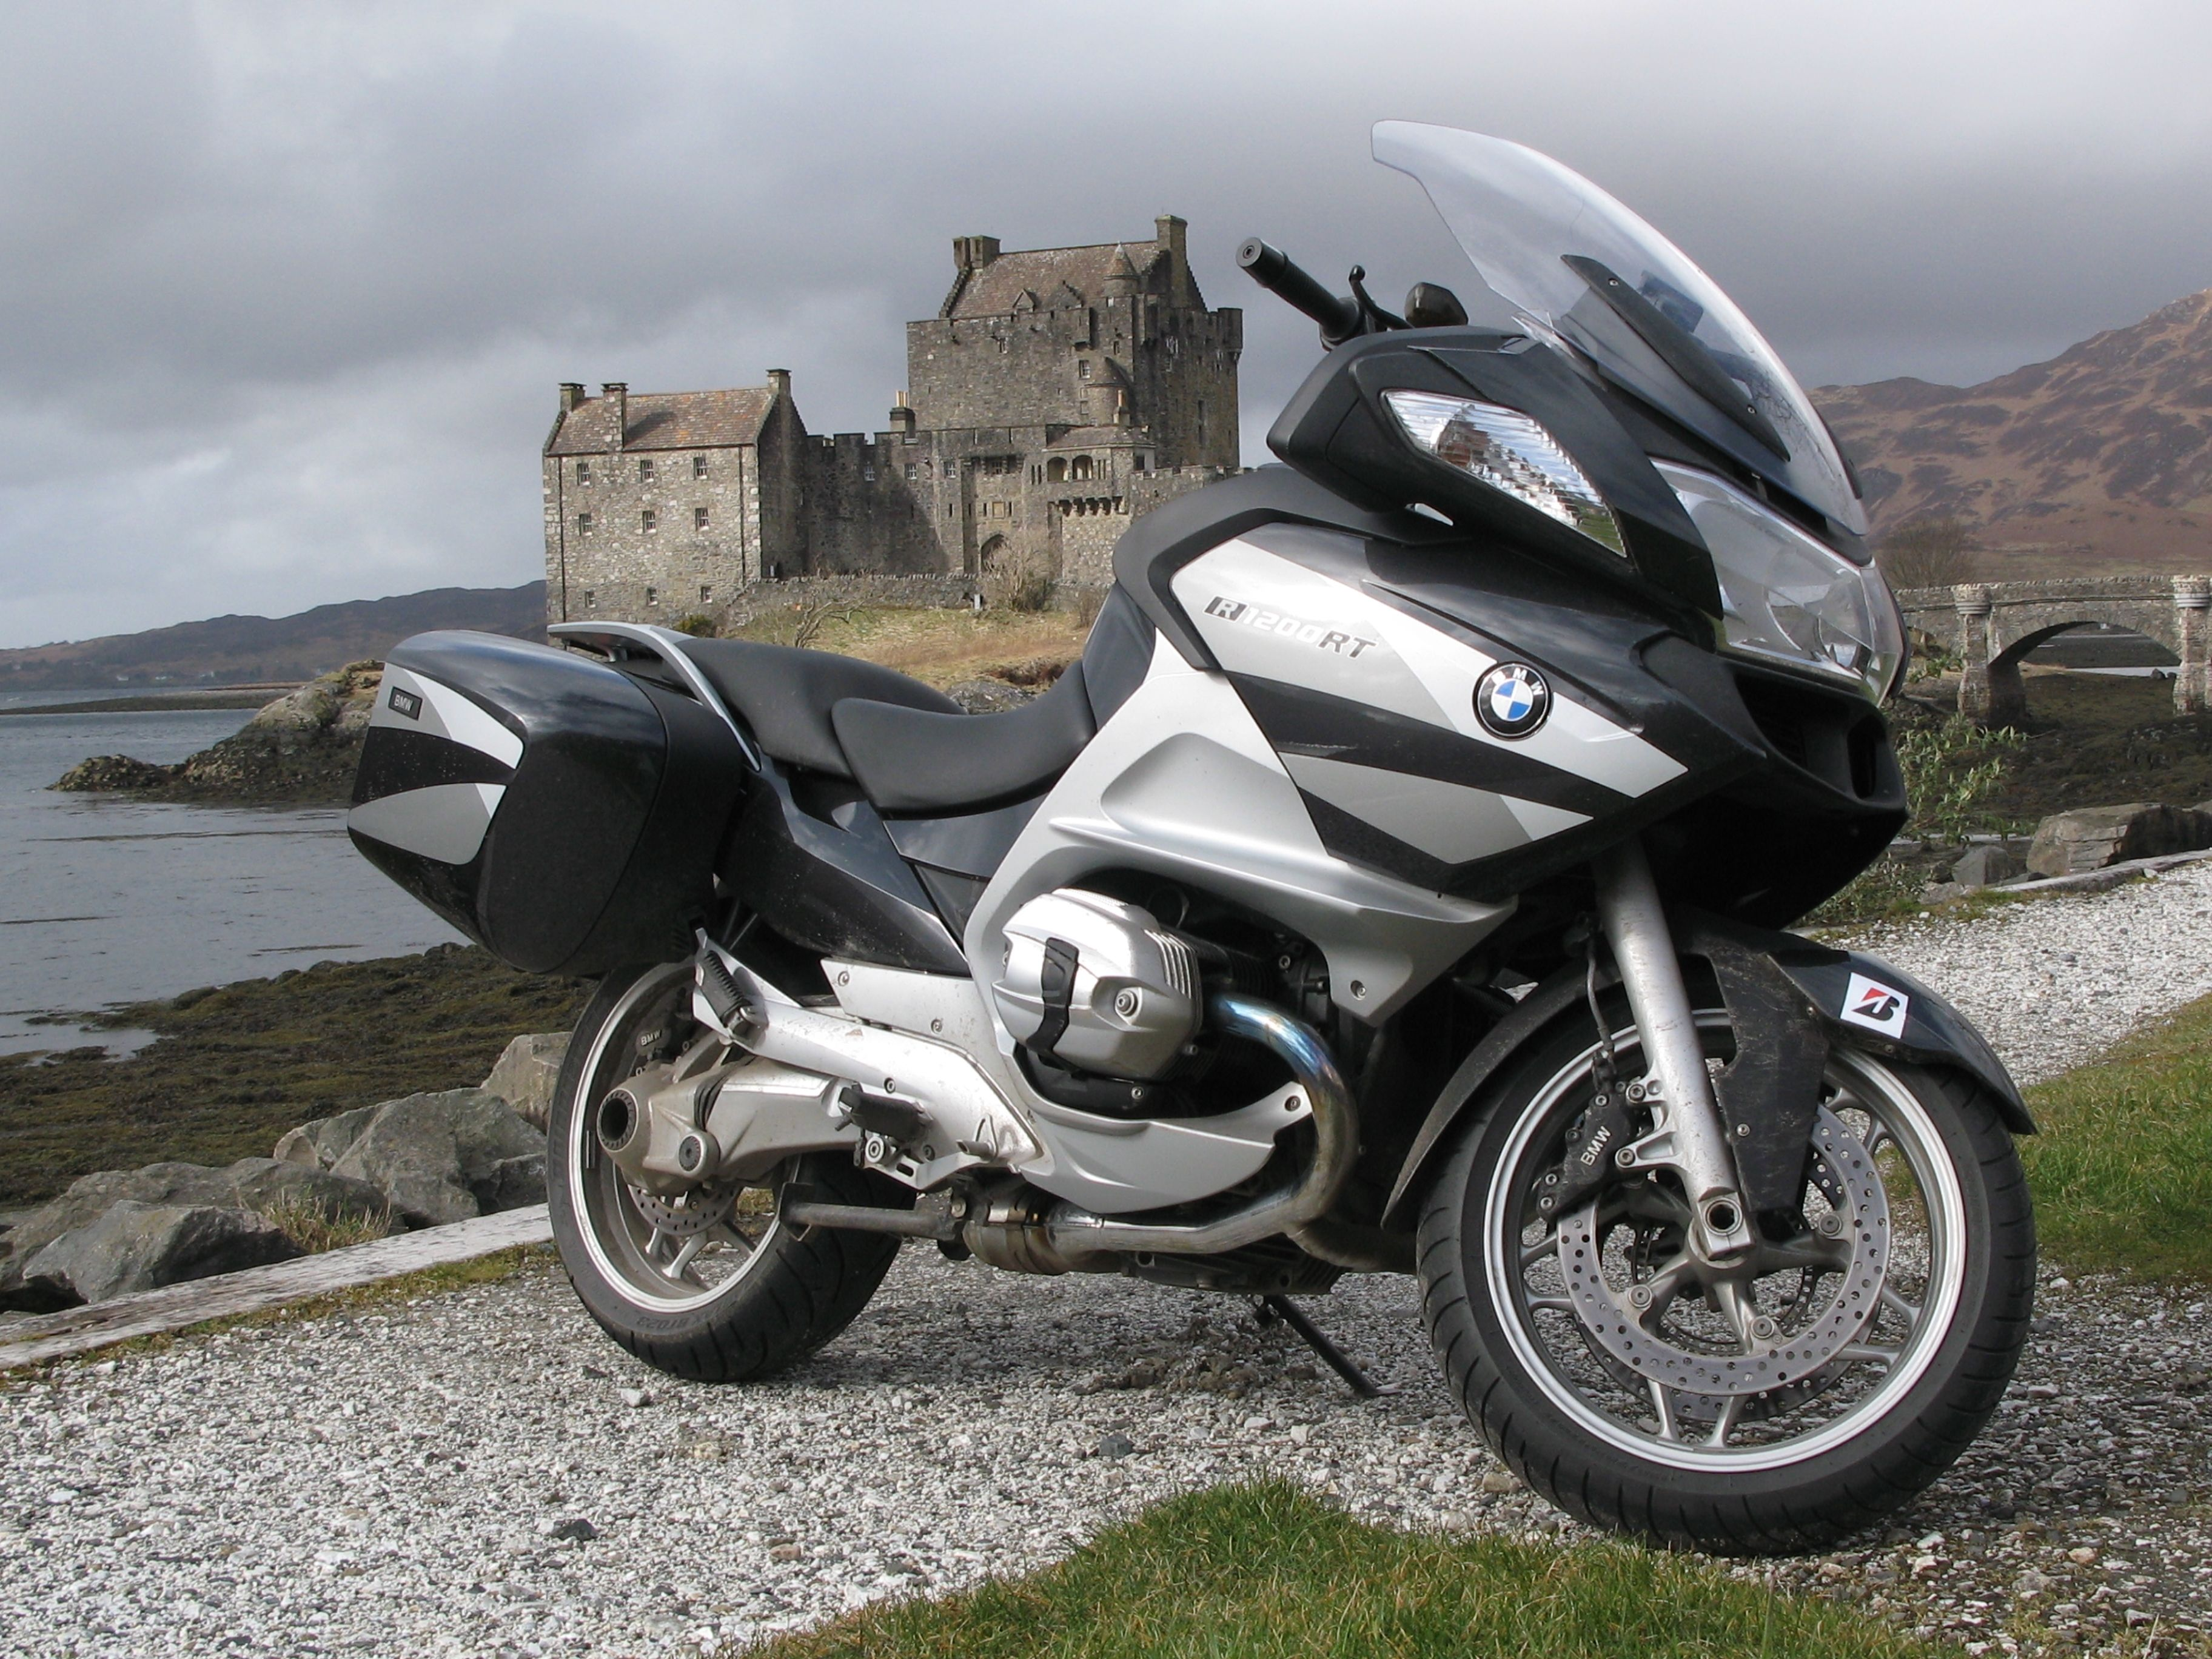 I Love Long Trips On Bikes One Trip On A Bmw R1200rt Turned Out To